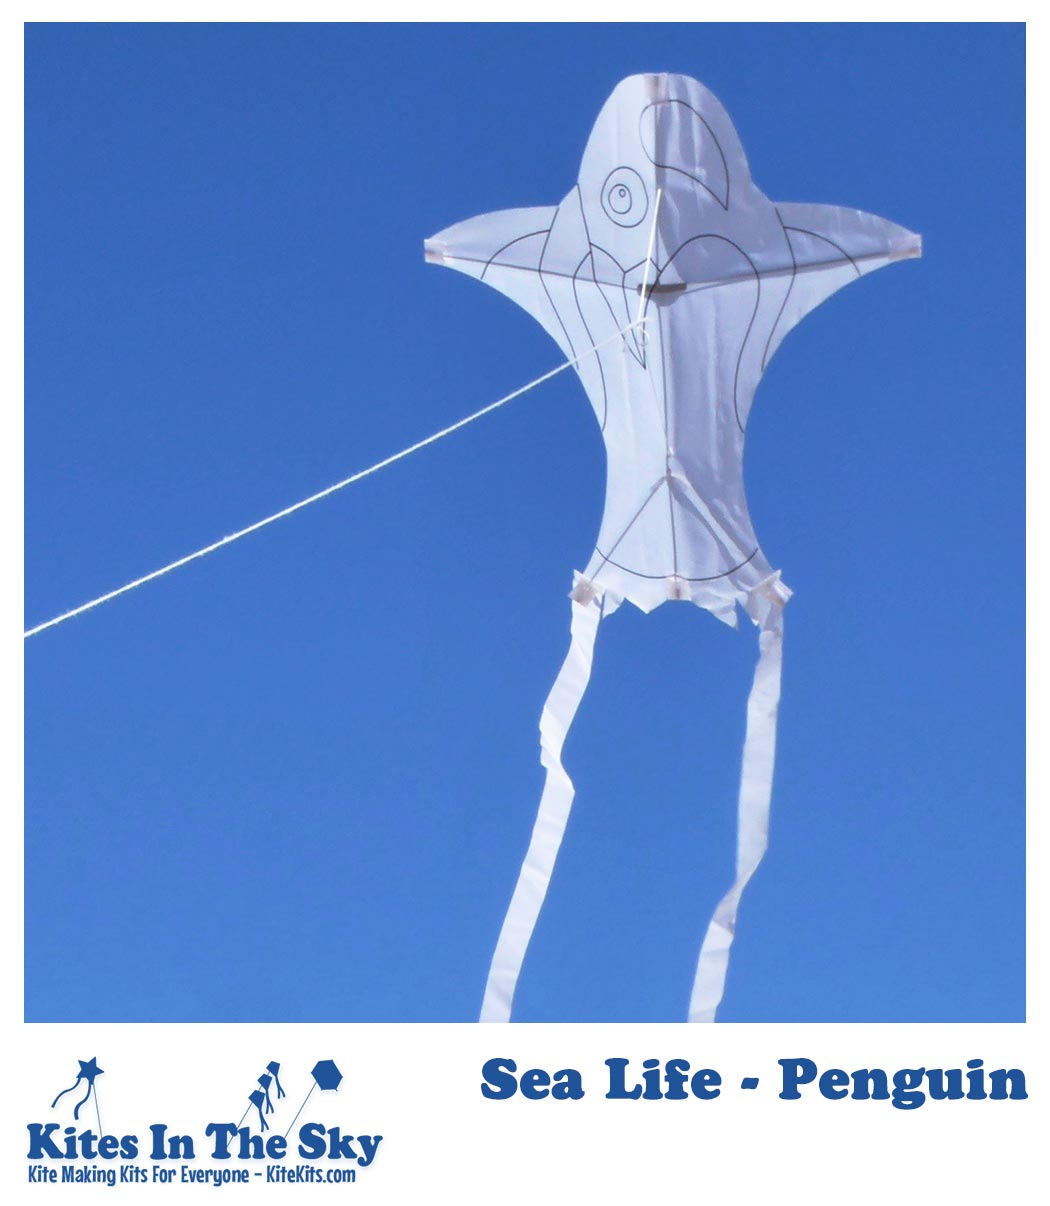 Sea Life - Penguin Kite (1-4 pk) - Kites In The Sky